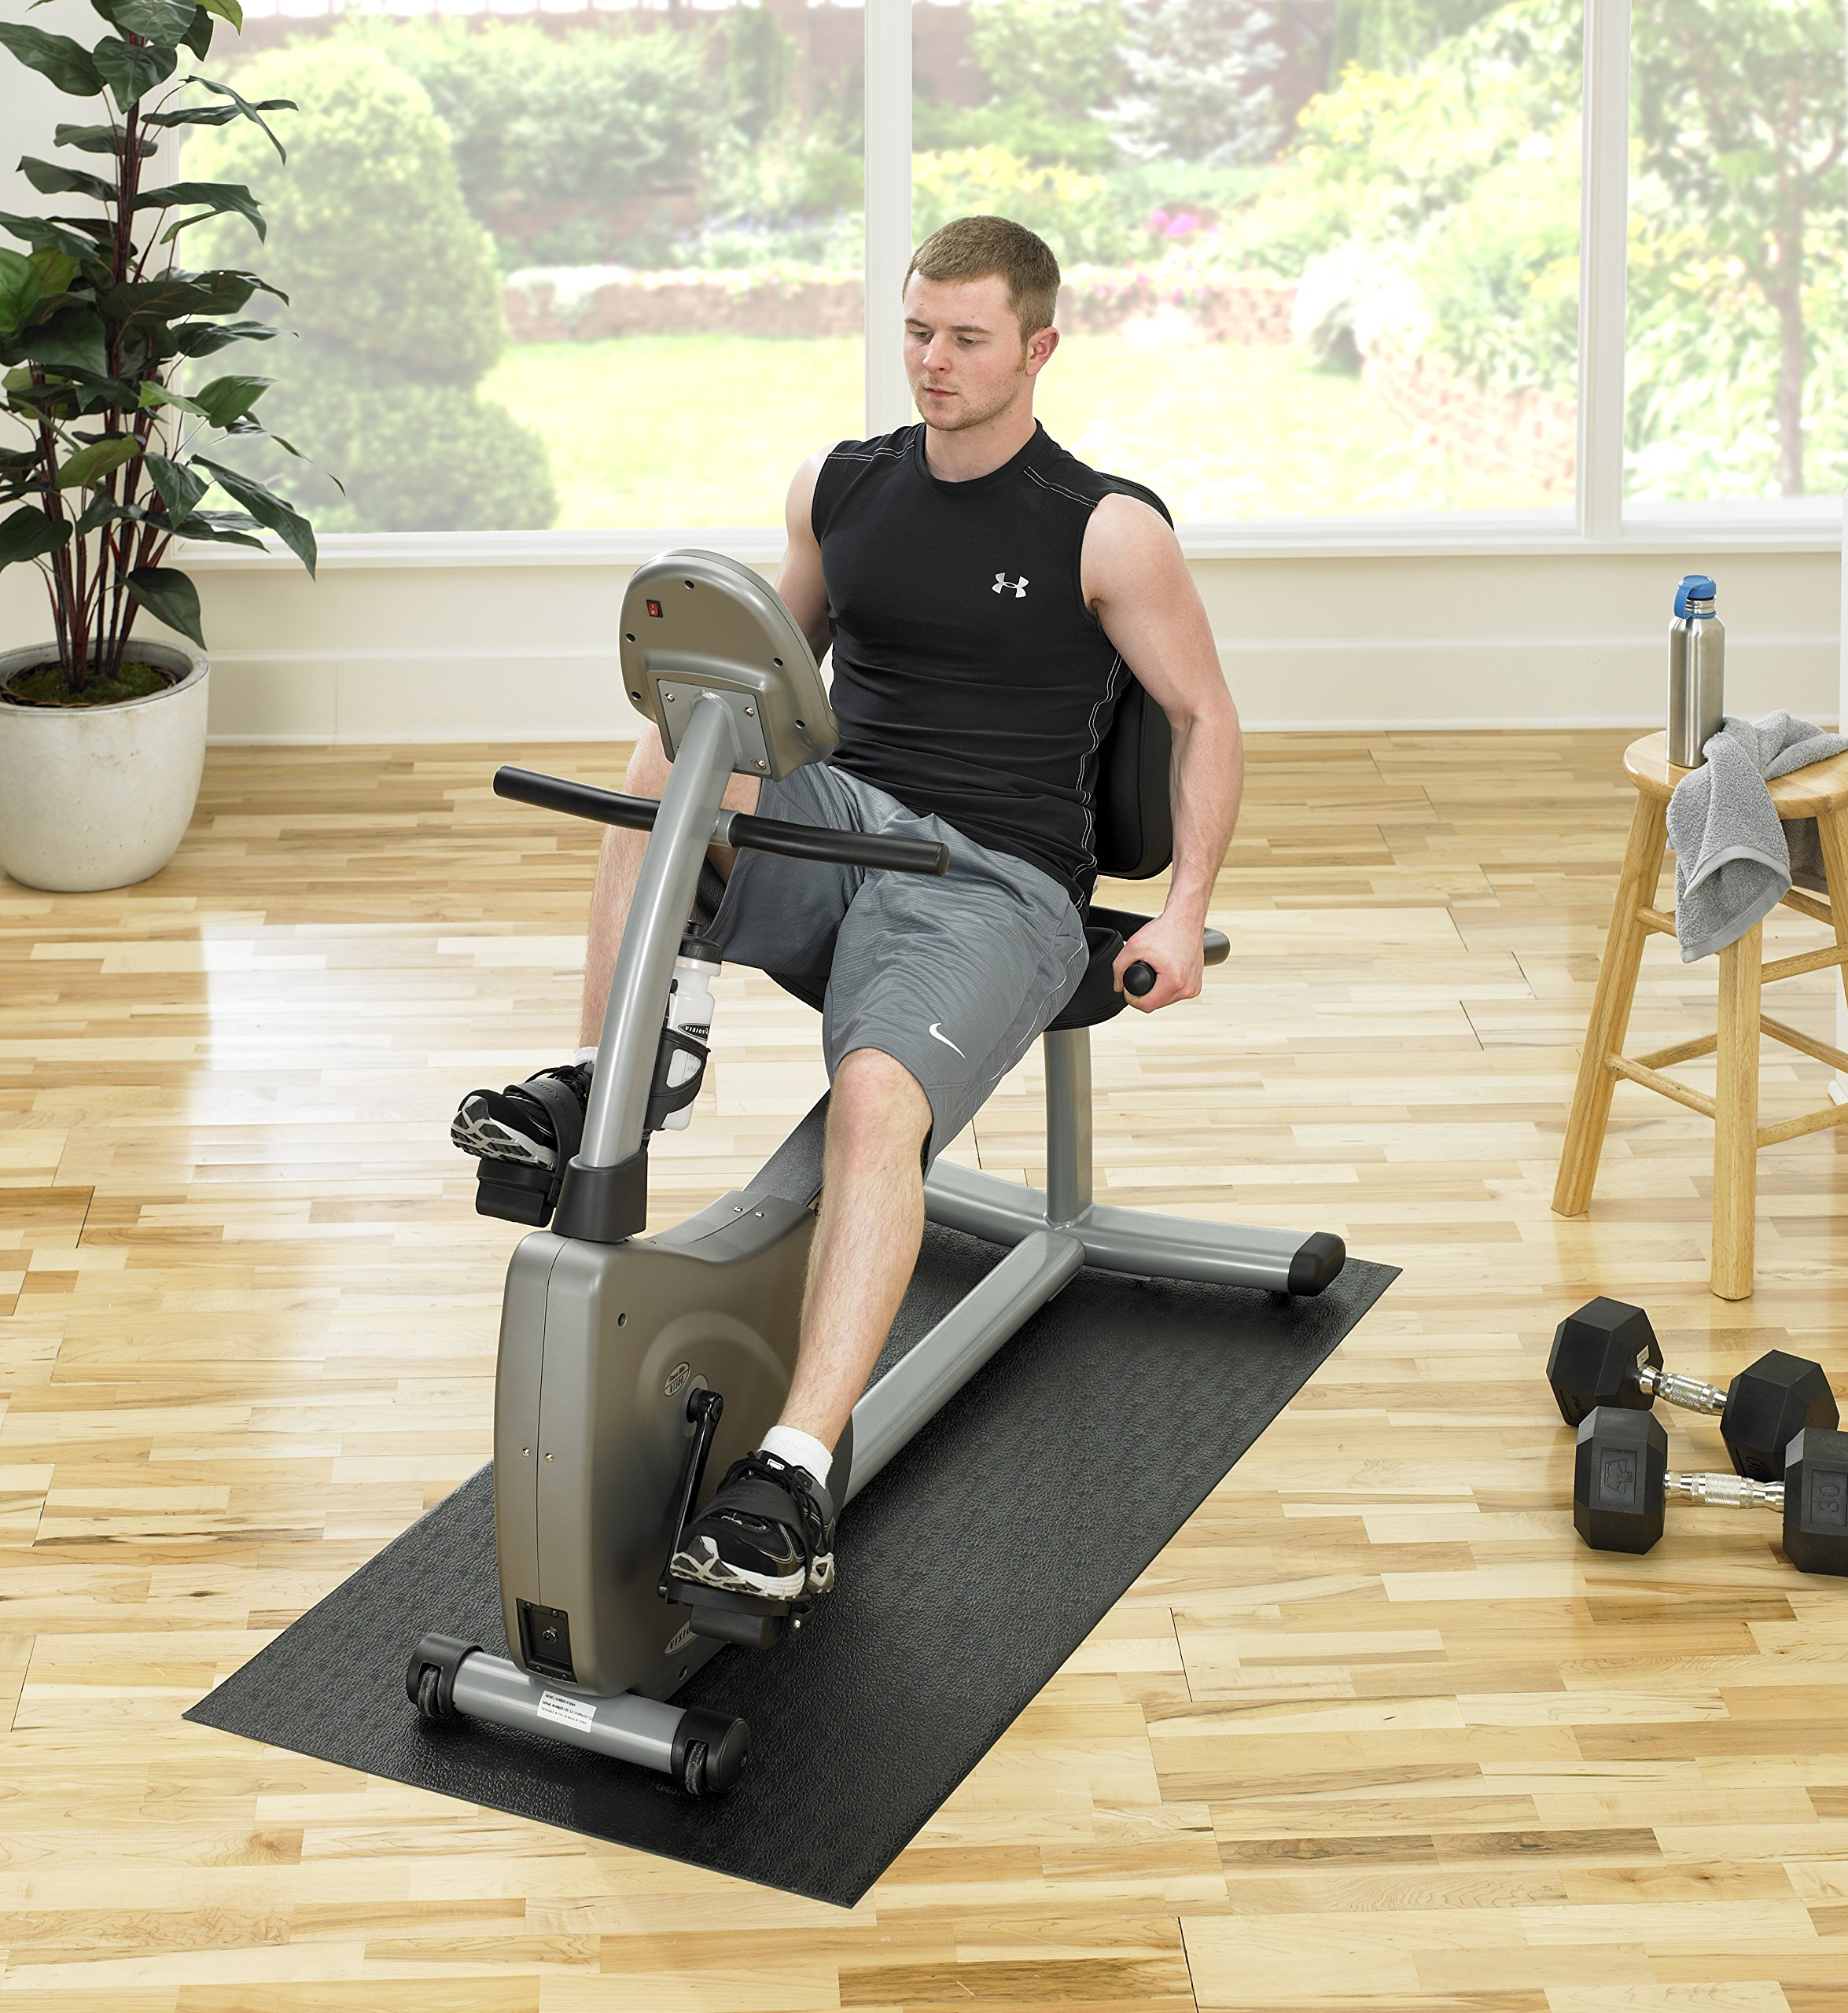 Supermats Heavy Duty Equipment Mat 13GS Made in U.S.A. for Indoor Cycles Recumbent Bikes Upright Exercise Bikes and Steppers  (2.5 Feet x 5 Feet) (30-Inch x 60-Inch)  (76.2 cm x 152.4 cm) by SuperMats (Image #3)